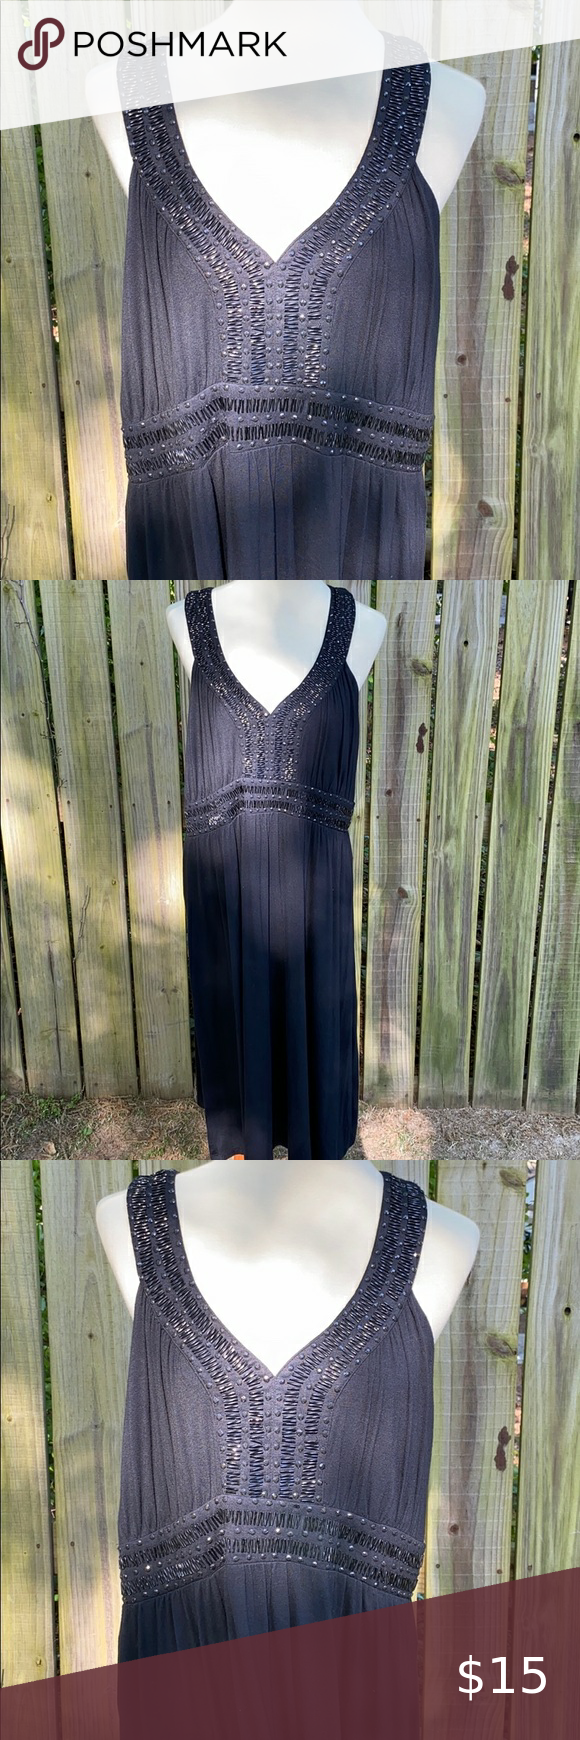 Lane Bryant Dress Size 18 20 Super Cute Spring Summer Casual Dress By Lane Bryant This Is A Lightly Wo Lane Bryant Dresses Casual Summer Dresses Size 18 Dress [ 1740 x 580 Pixel ]